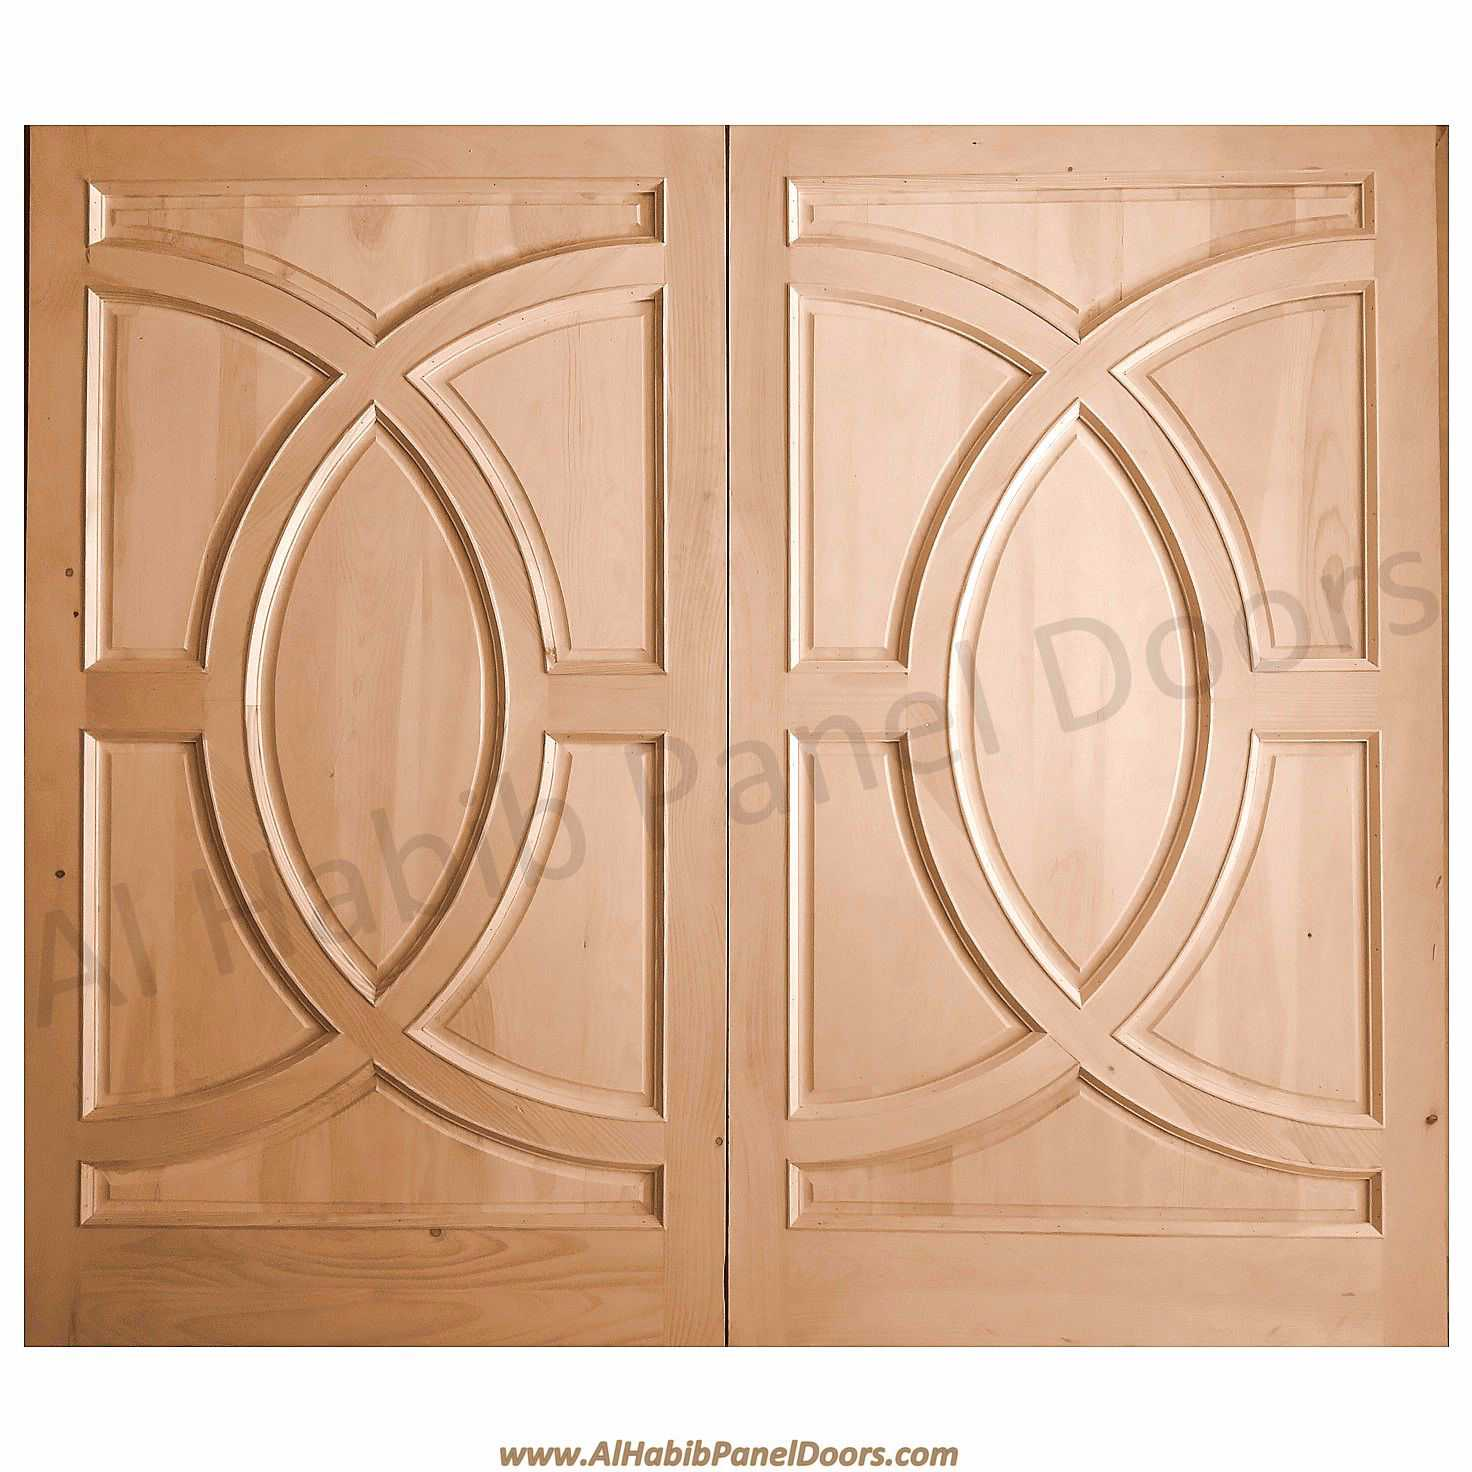 Pakistani kail solid wood double door hpd410 main doors for Double door wooden door